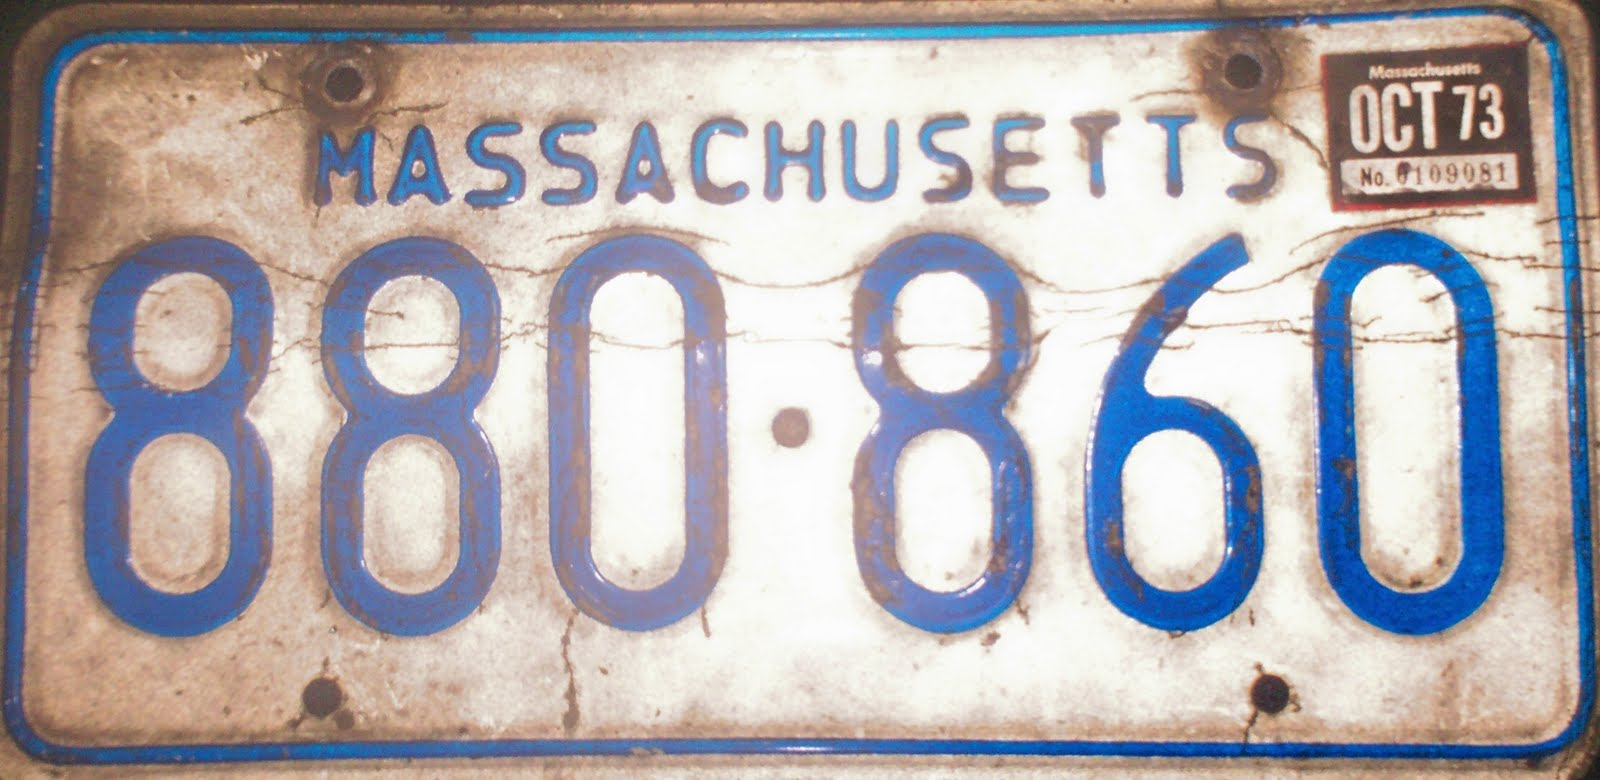 New England Travels: License Plates